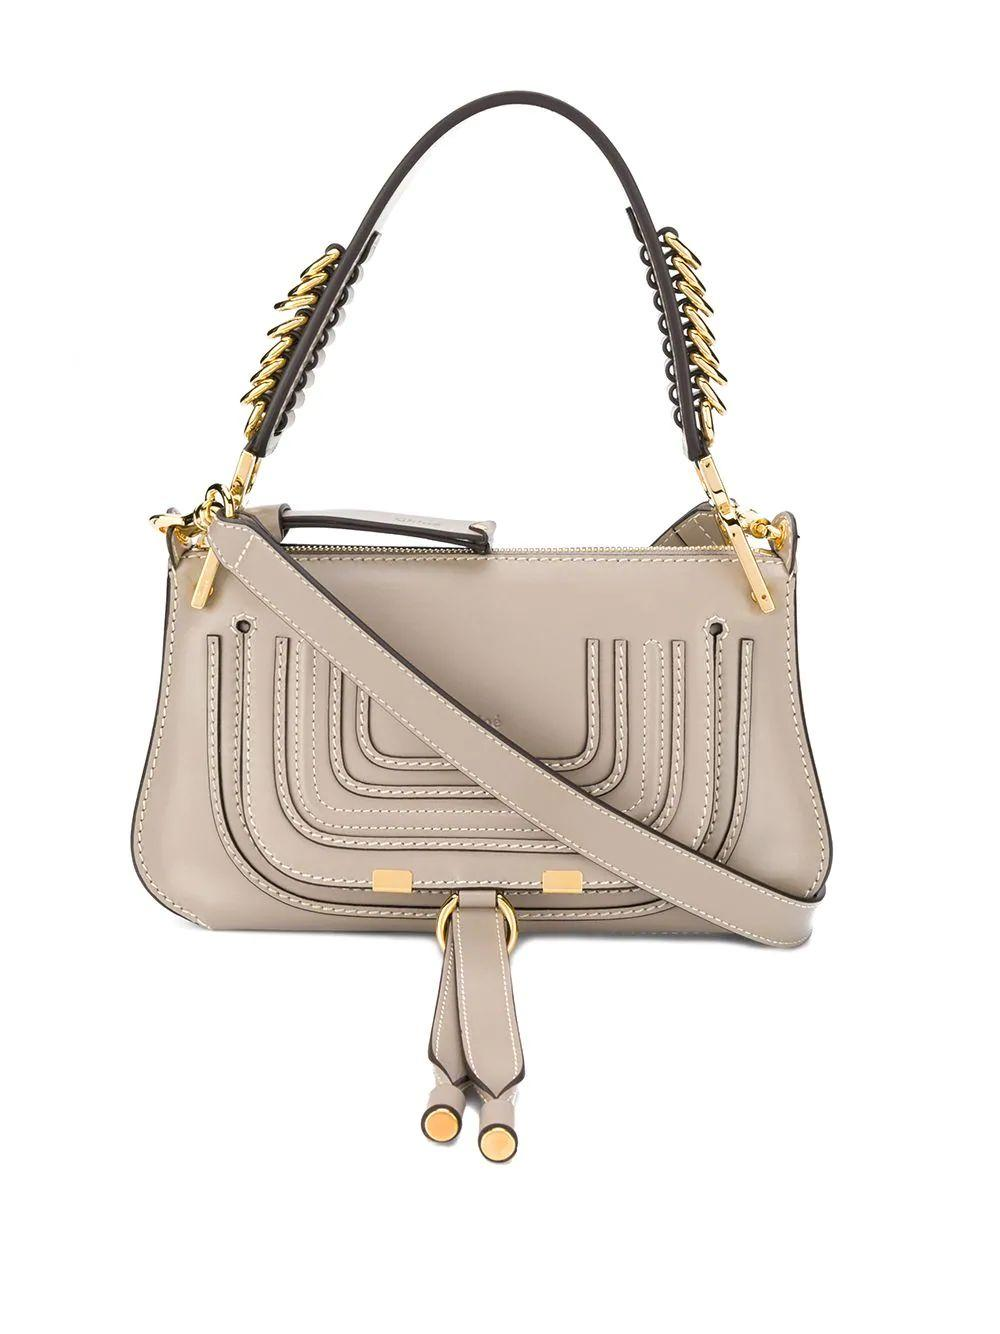 Marcie Small Leather Saddle Bag Item # CHC19AS148A3723W